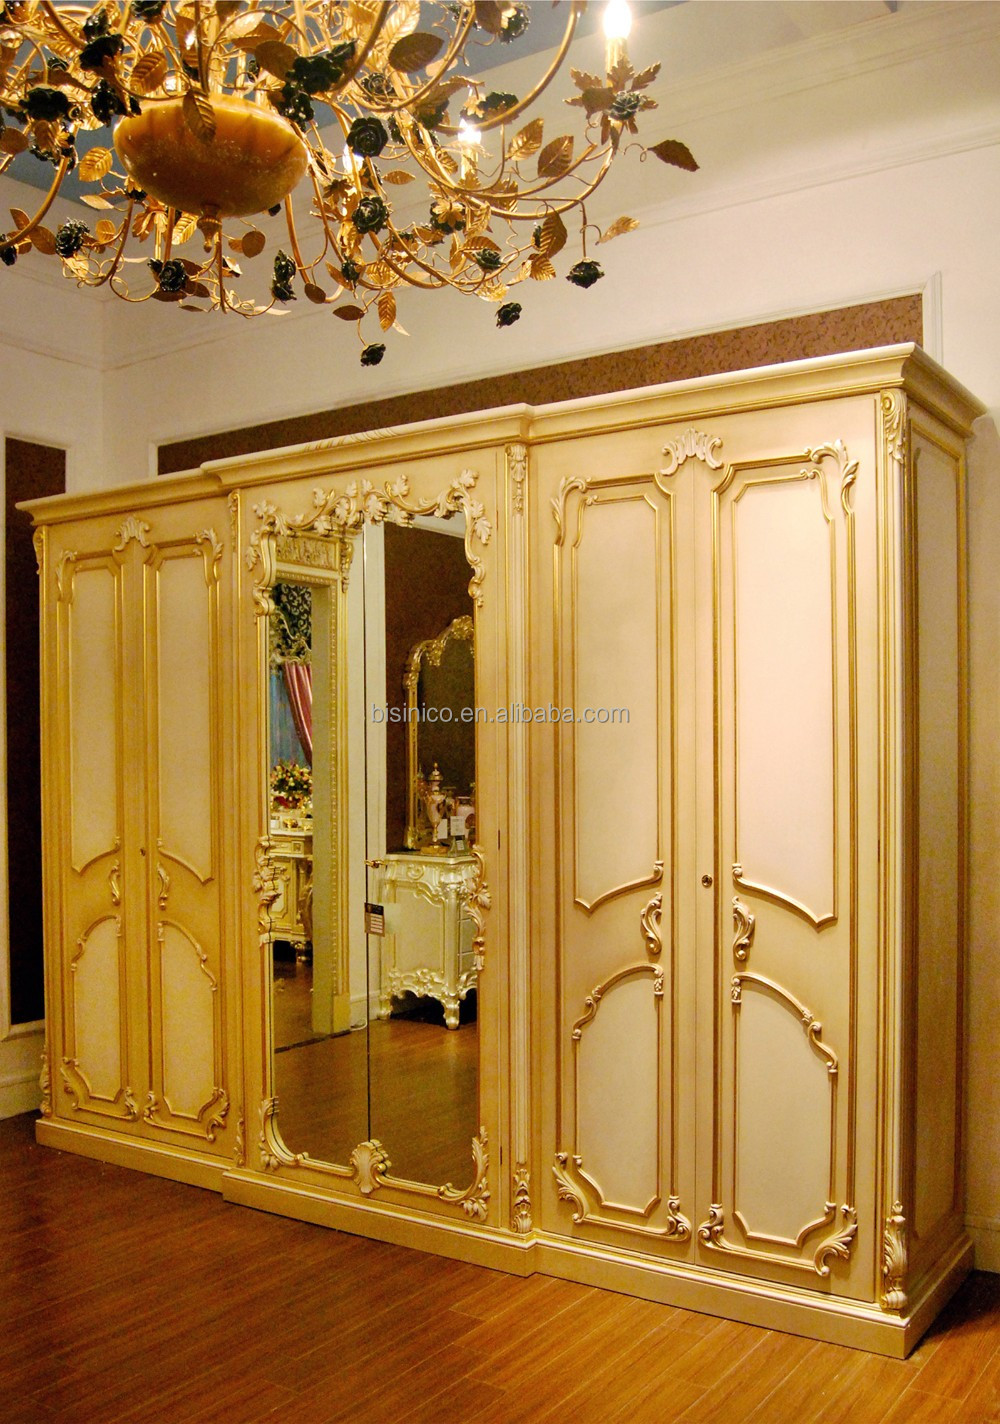 Canopy Bed Crown, Canopy Bed Crown Suppliers and Manufacturers at ...